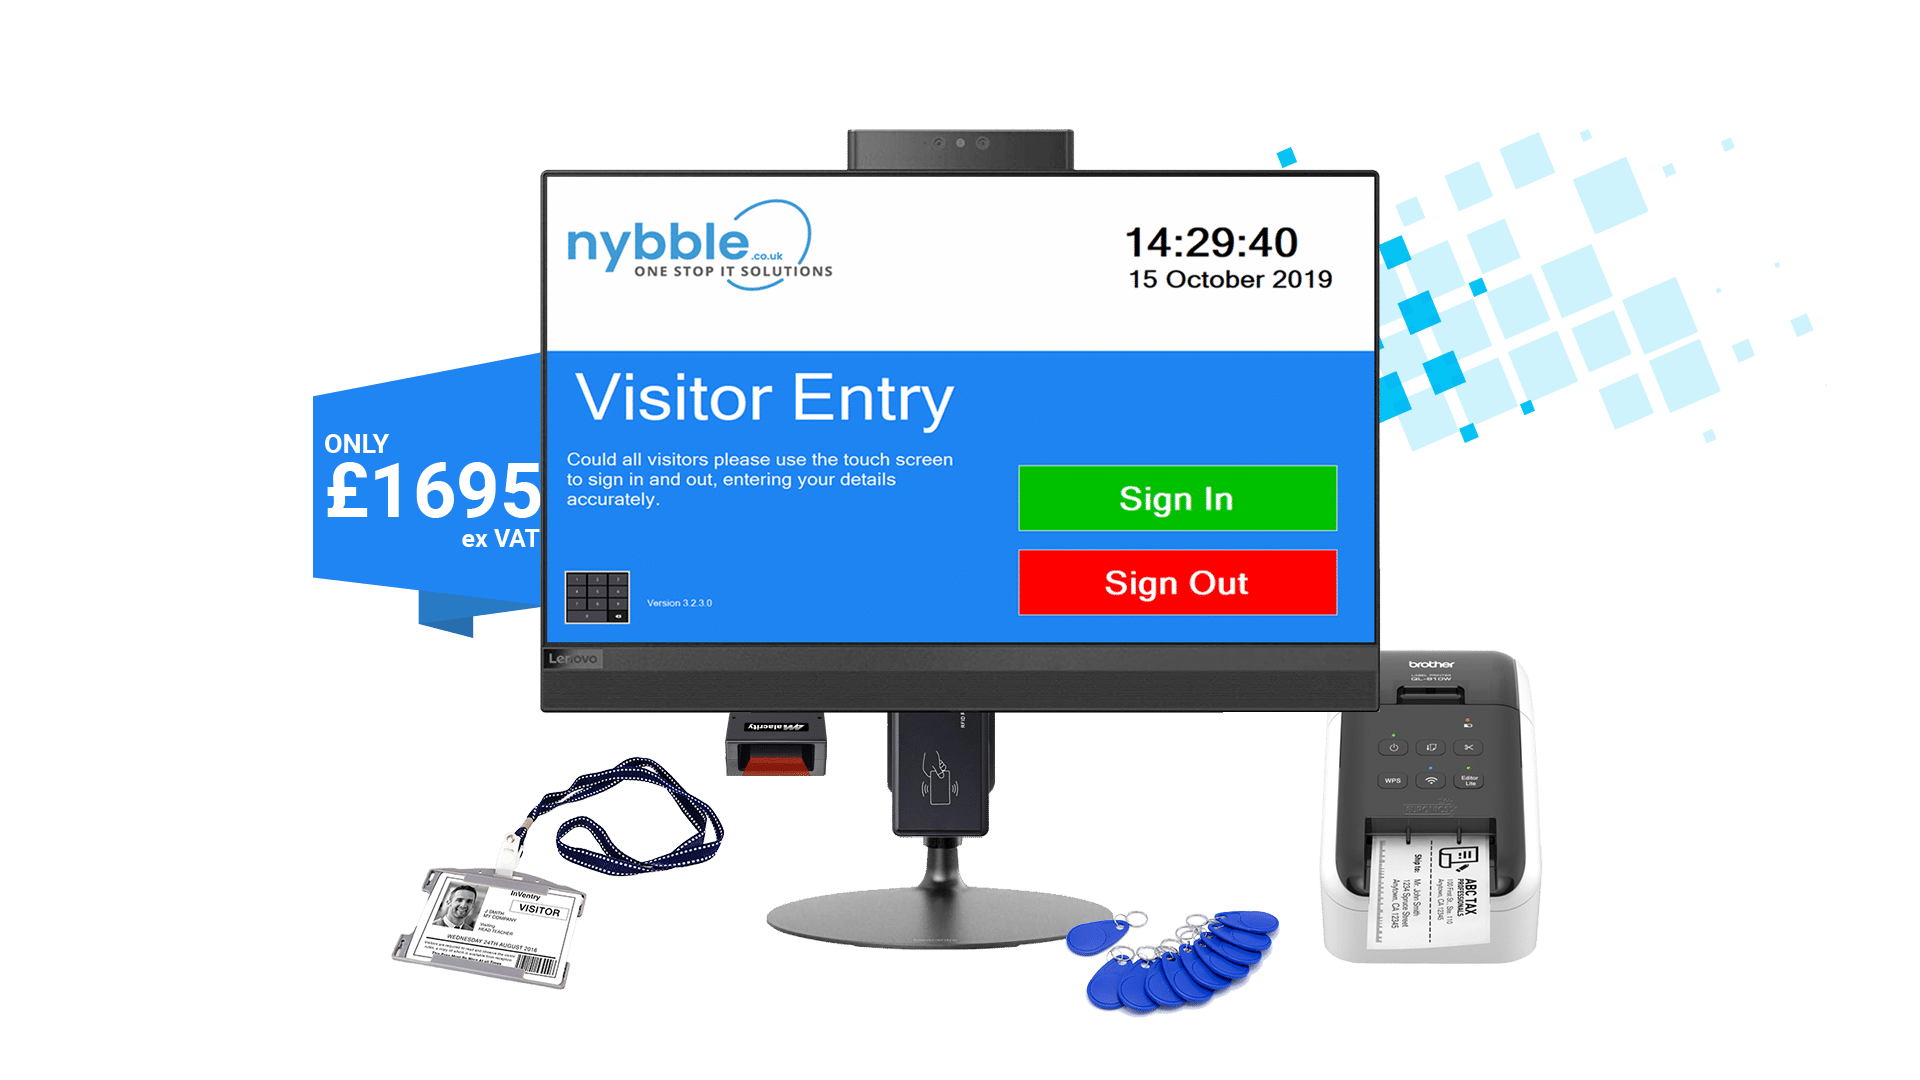 Nybble - Bespoke Visitor Entry Management System - from £1605ex VAT